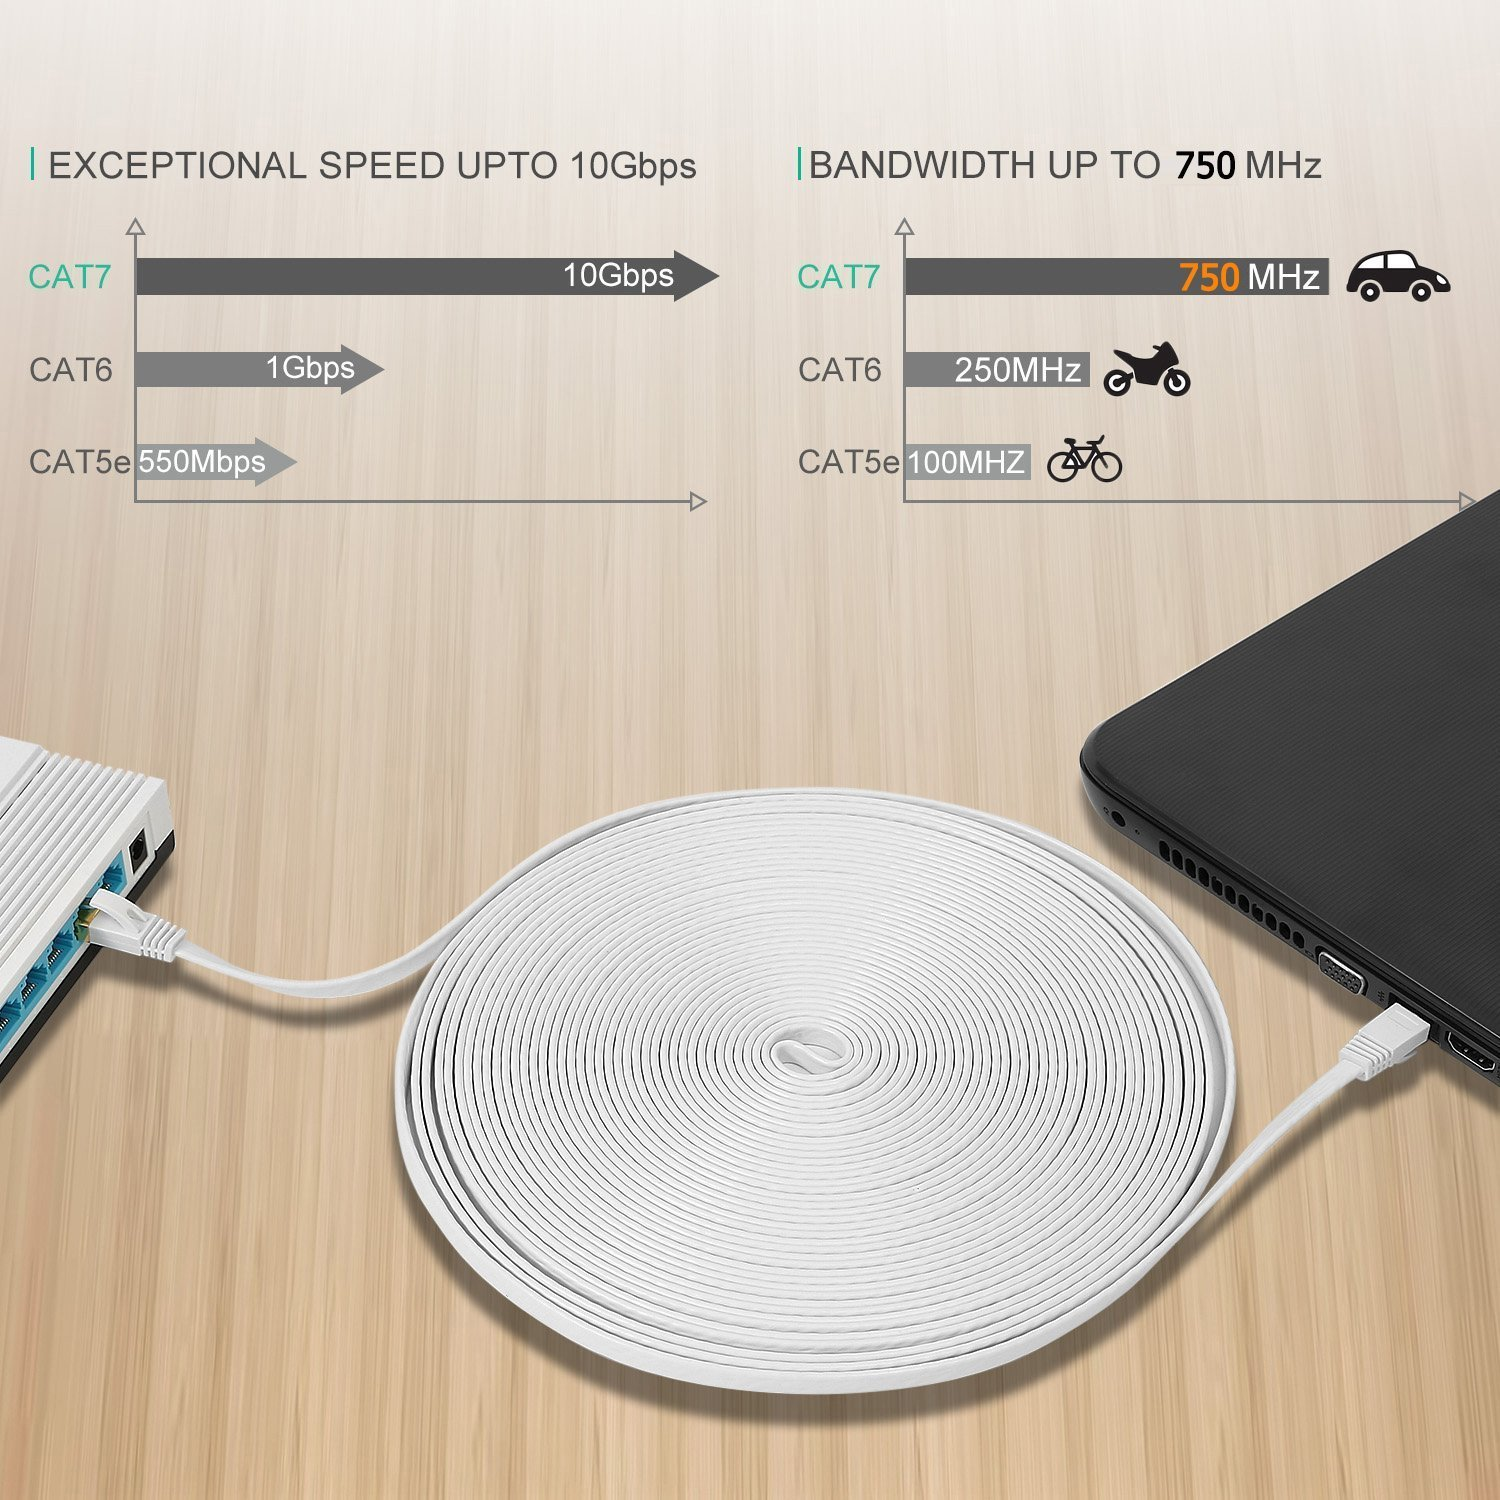 10GB Fastest Shielded RJ45 Computer Internet Network Cable Cat 7 Ethernet Cable 75 ft White 75 ft Flat Patch Cable for Modem Router LAN